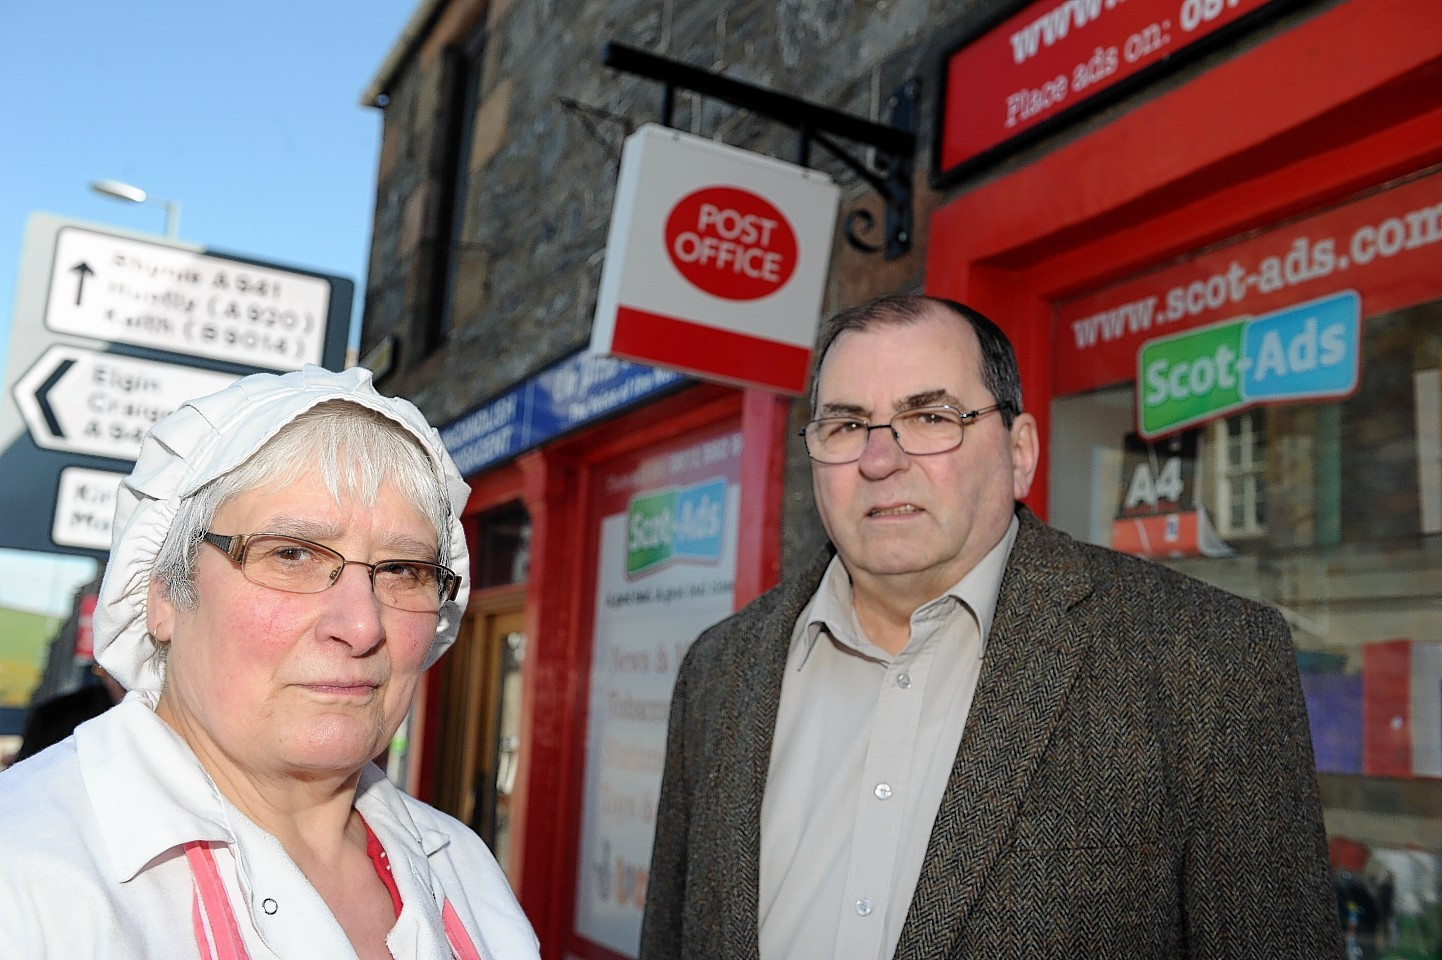 Bunty Campbell, chairman of Dufftown Community Council, and Moray councillor Mike McConnachie at Dufftown Post Office